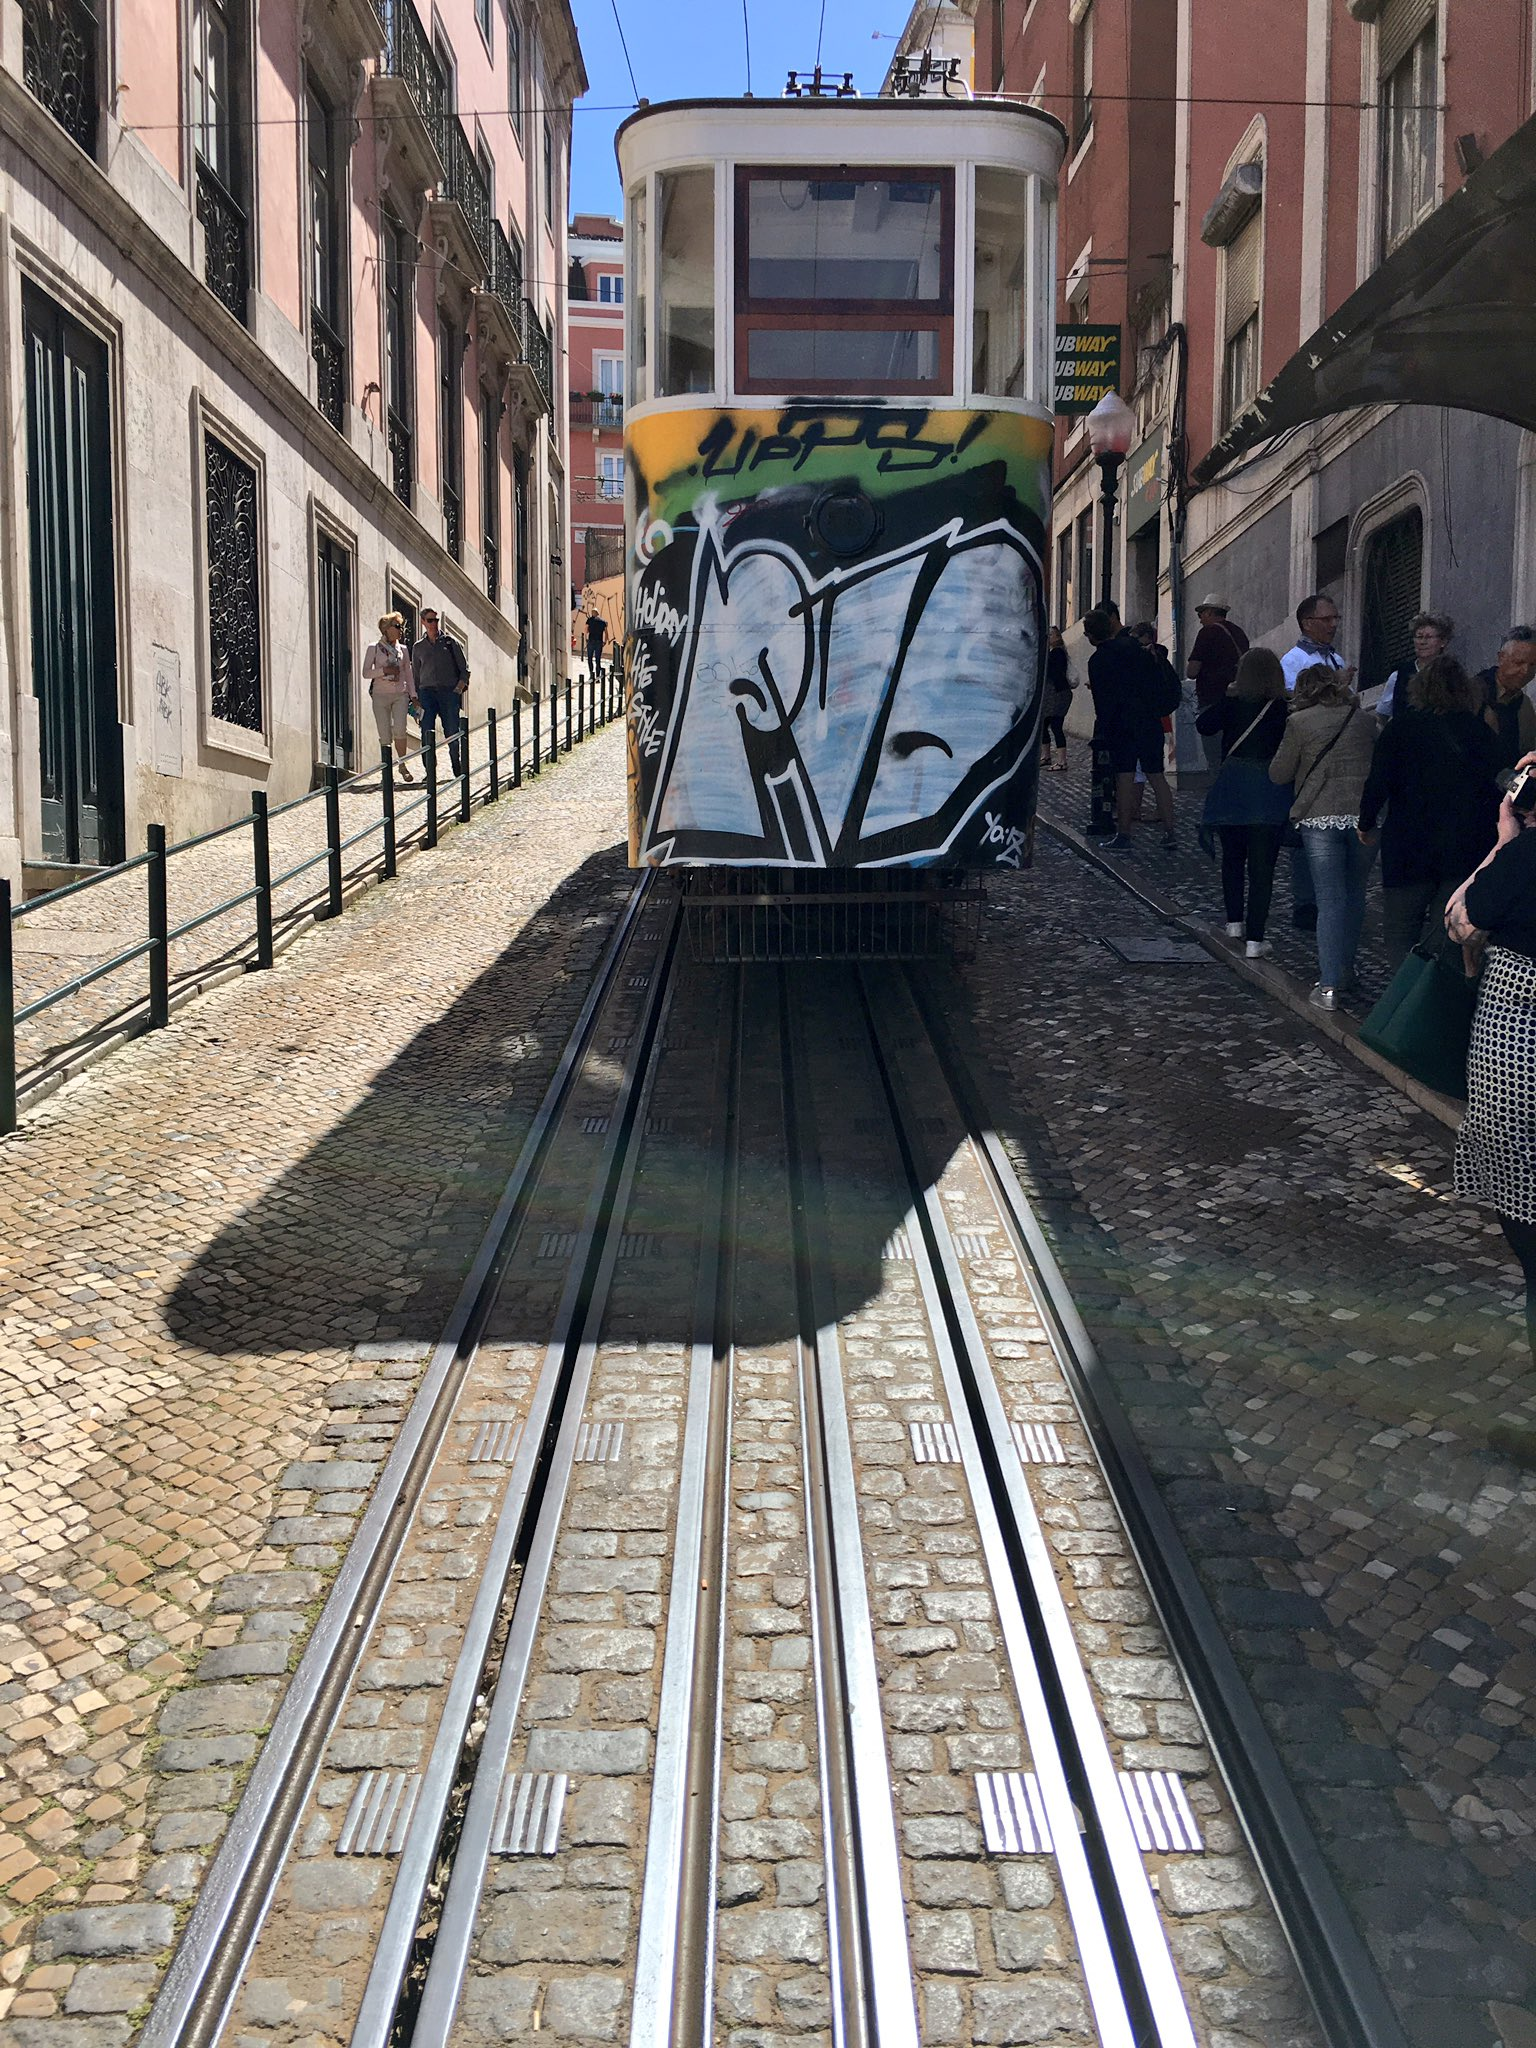 Don't have room for two parallel funicular tracks with cable? Overlap them. https://t.co/lO5WVTMqo4